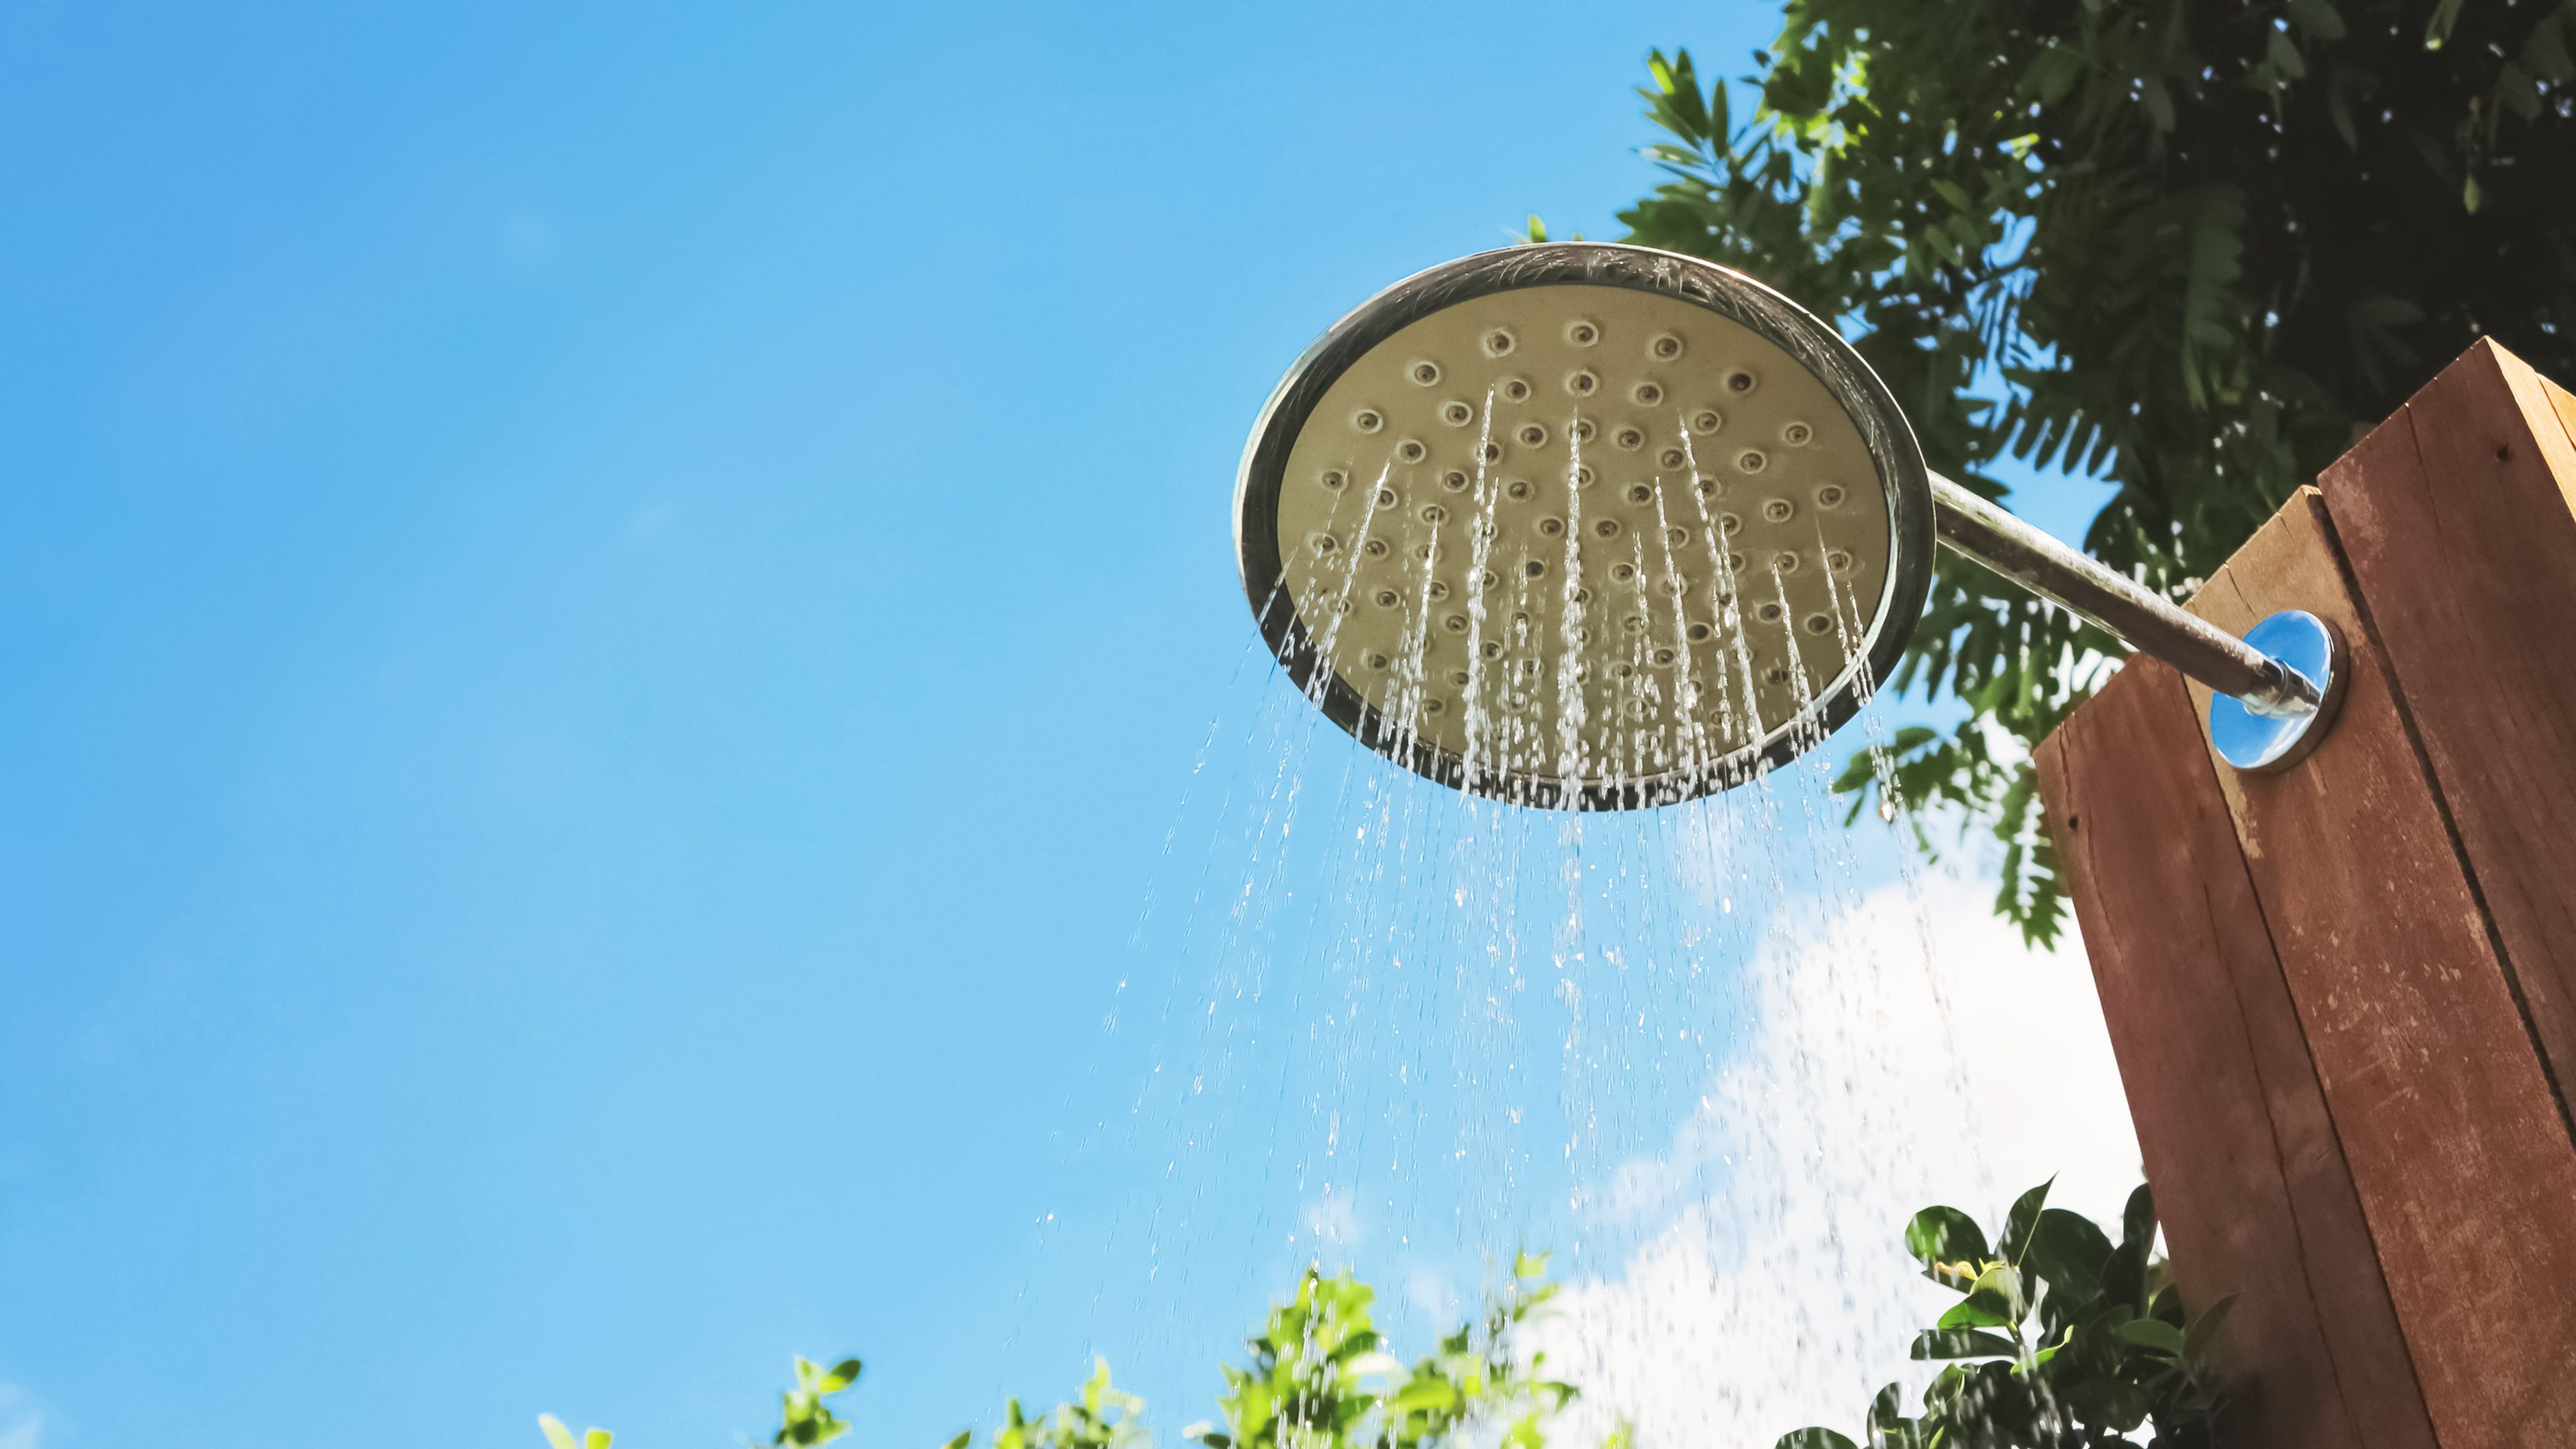 Outdoor shower buying guide